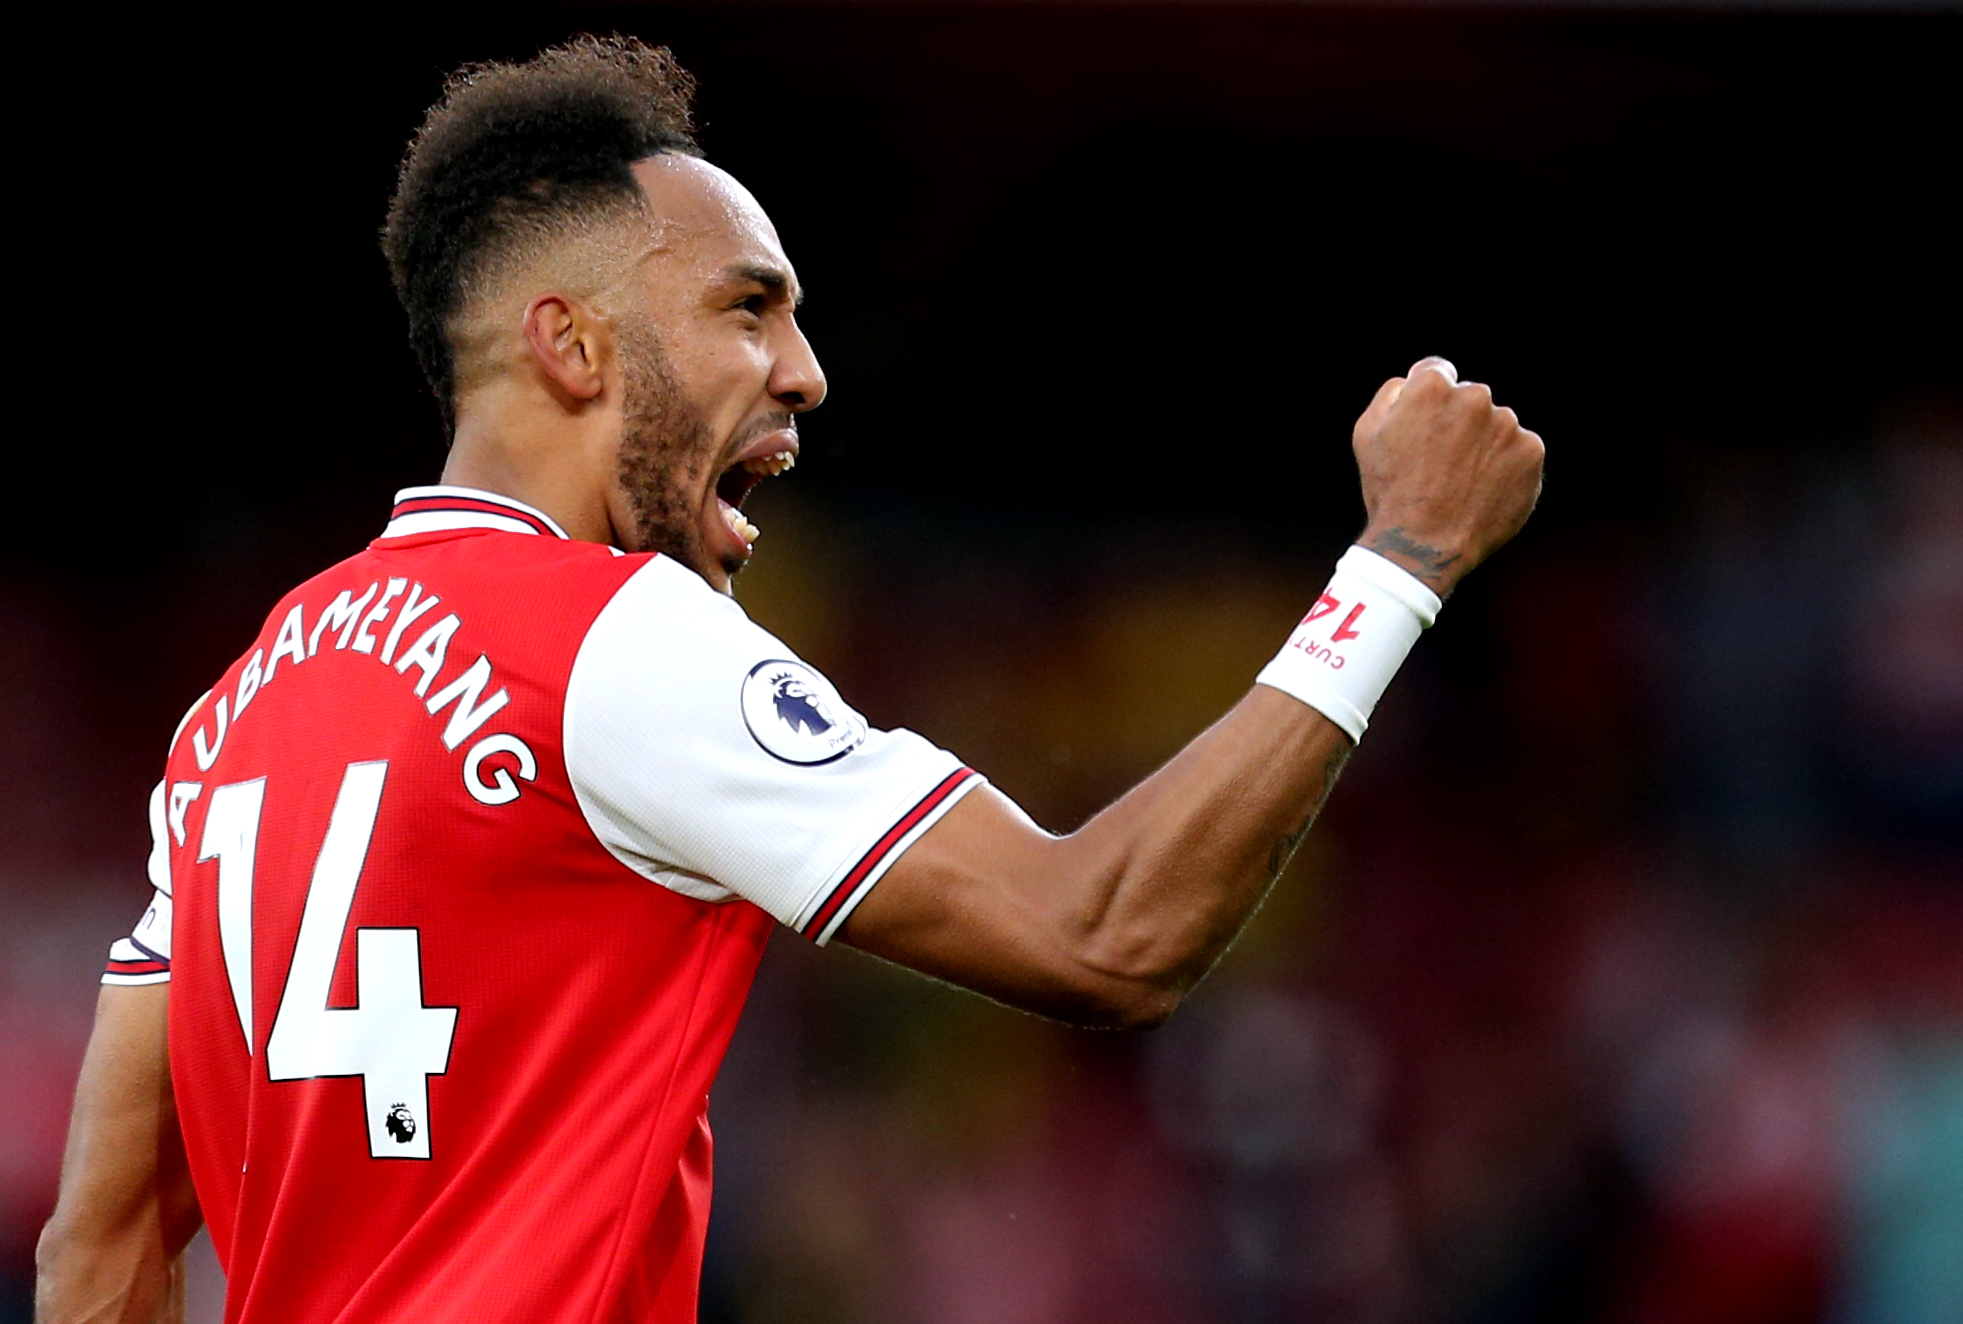 Arsenal 3-2 Everton: Aubameyang scores twice in a five goal thriller